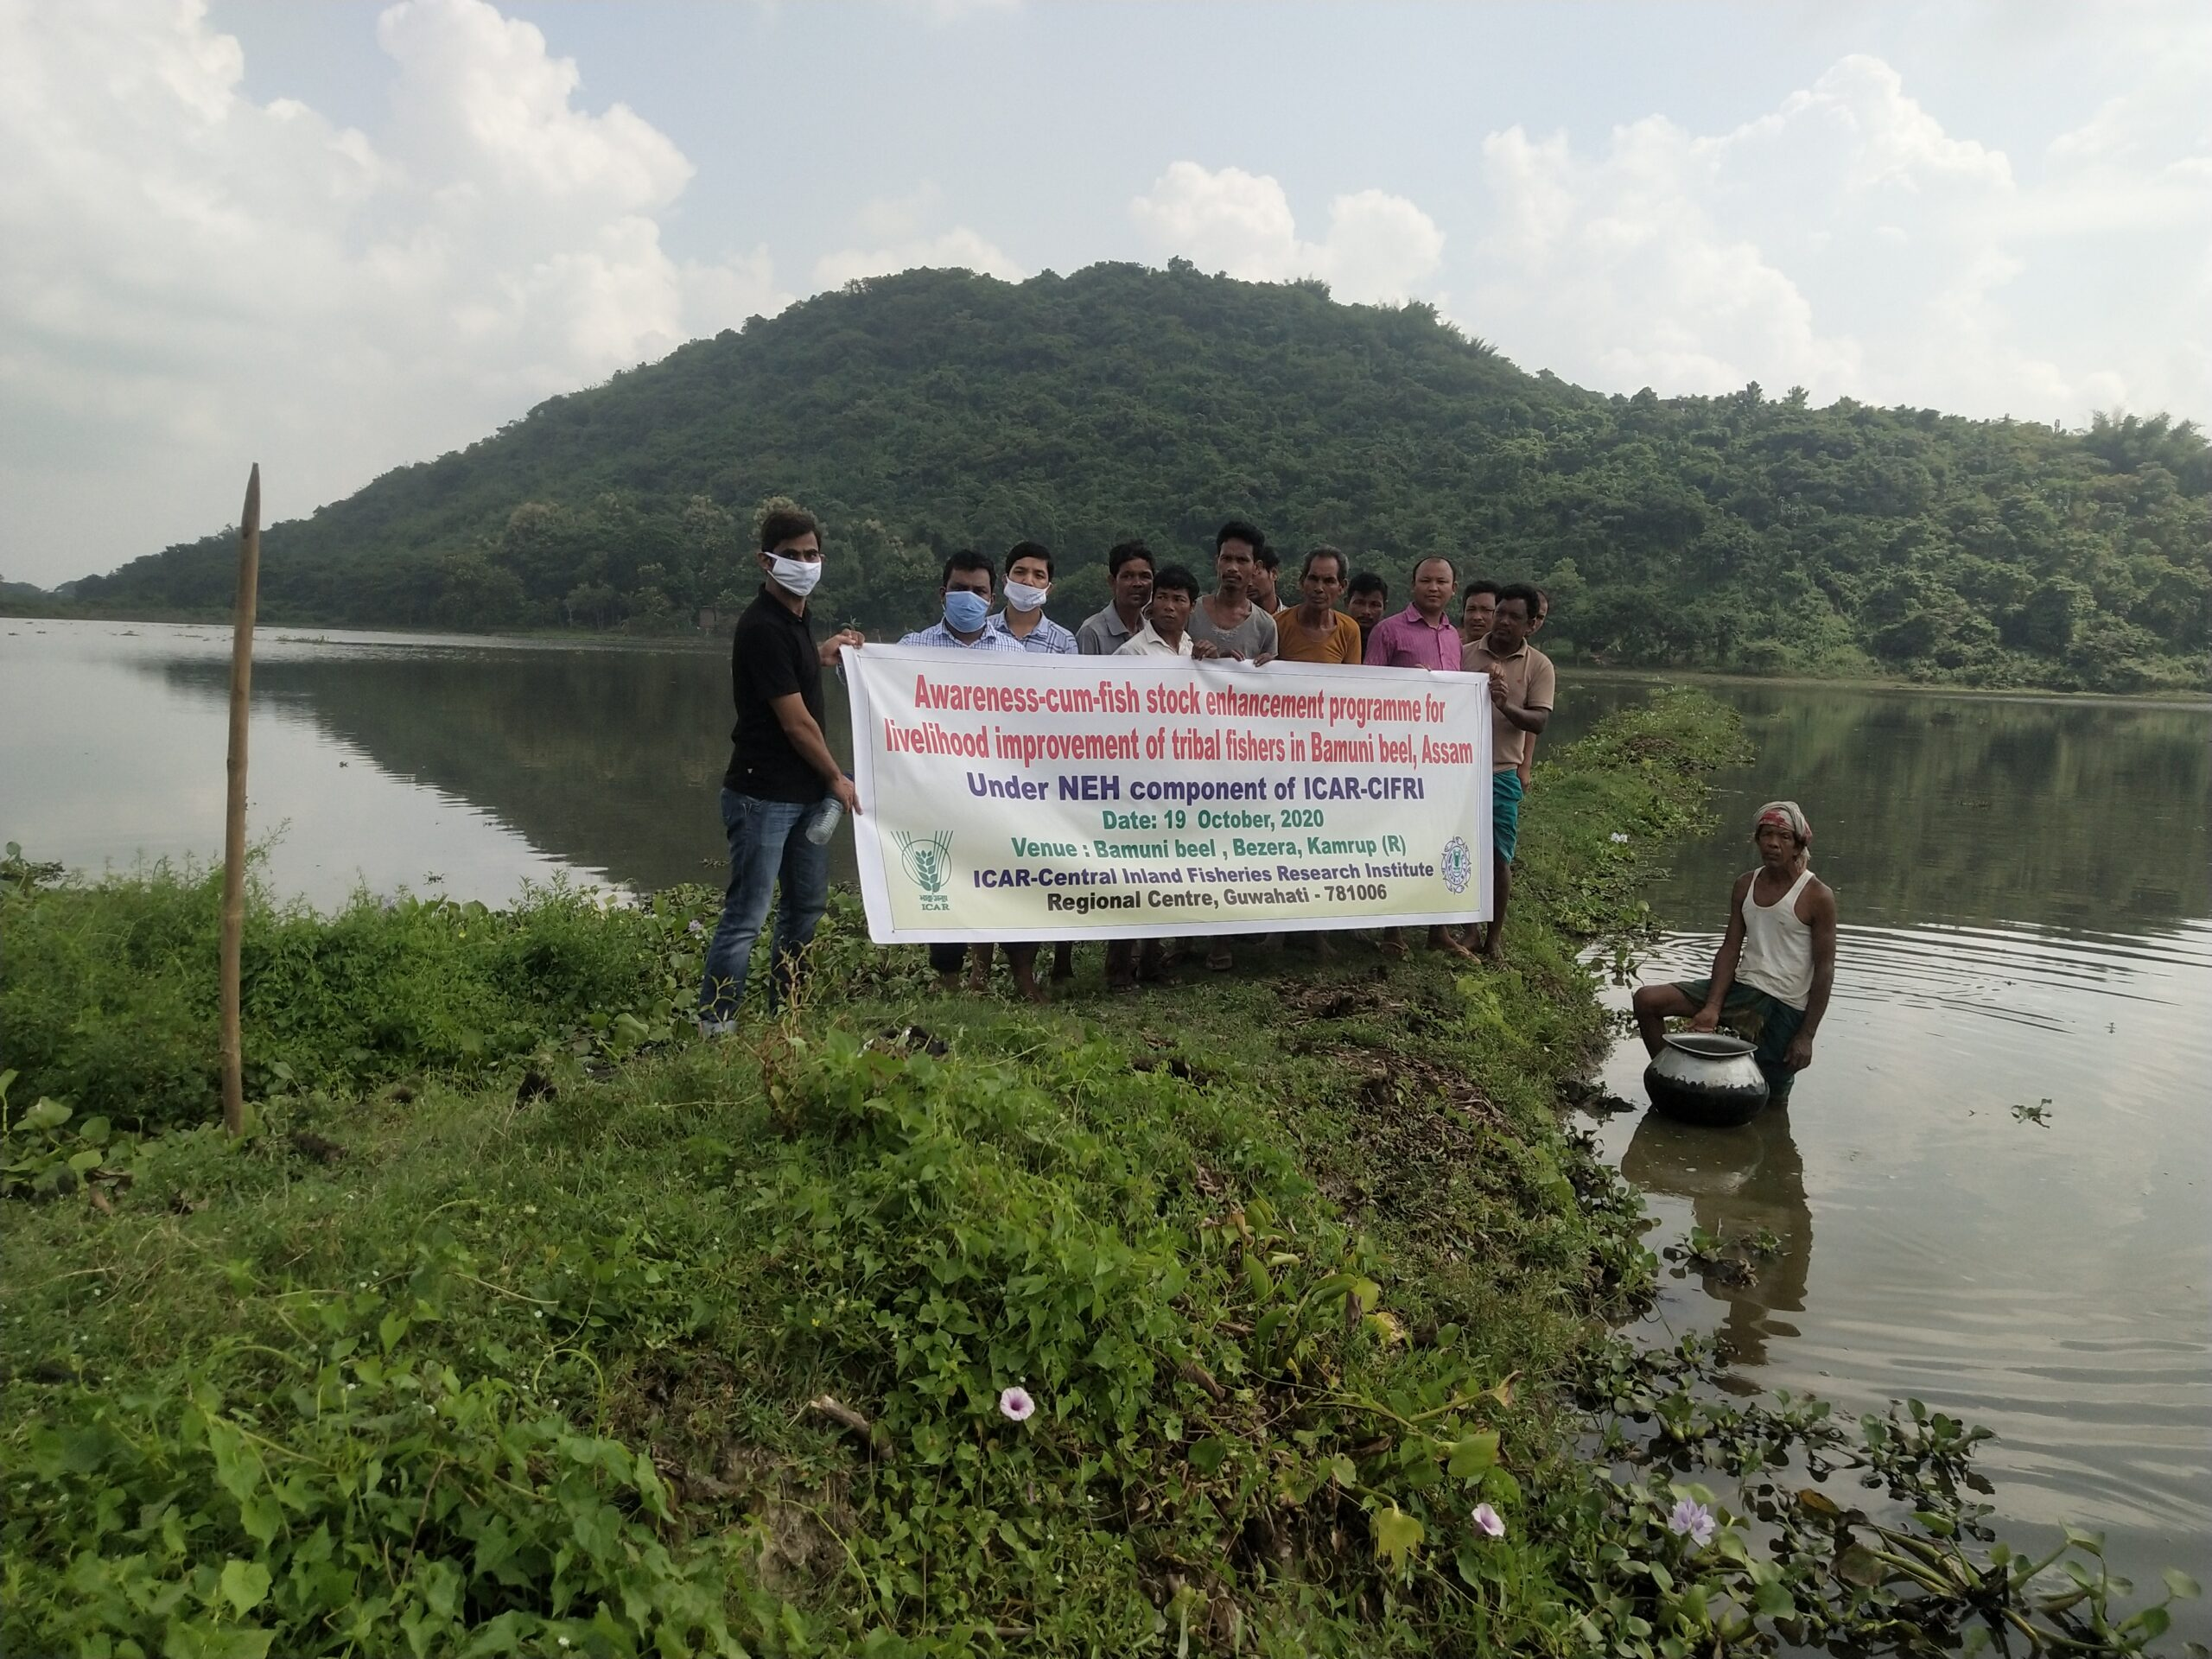 Fish stock enhancement programme for livelihood improvement of tribal fishers in Bamuni beel, Assam